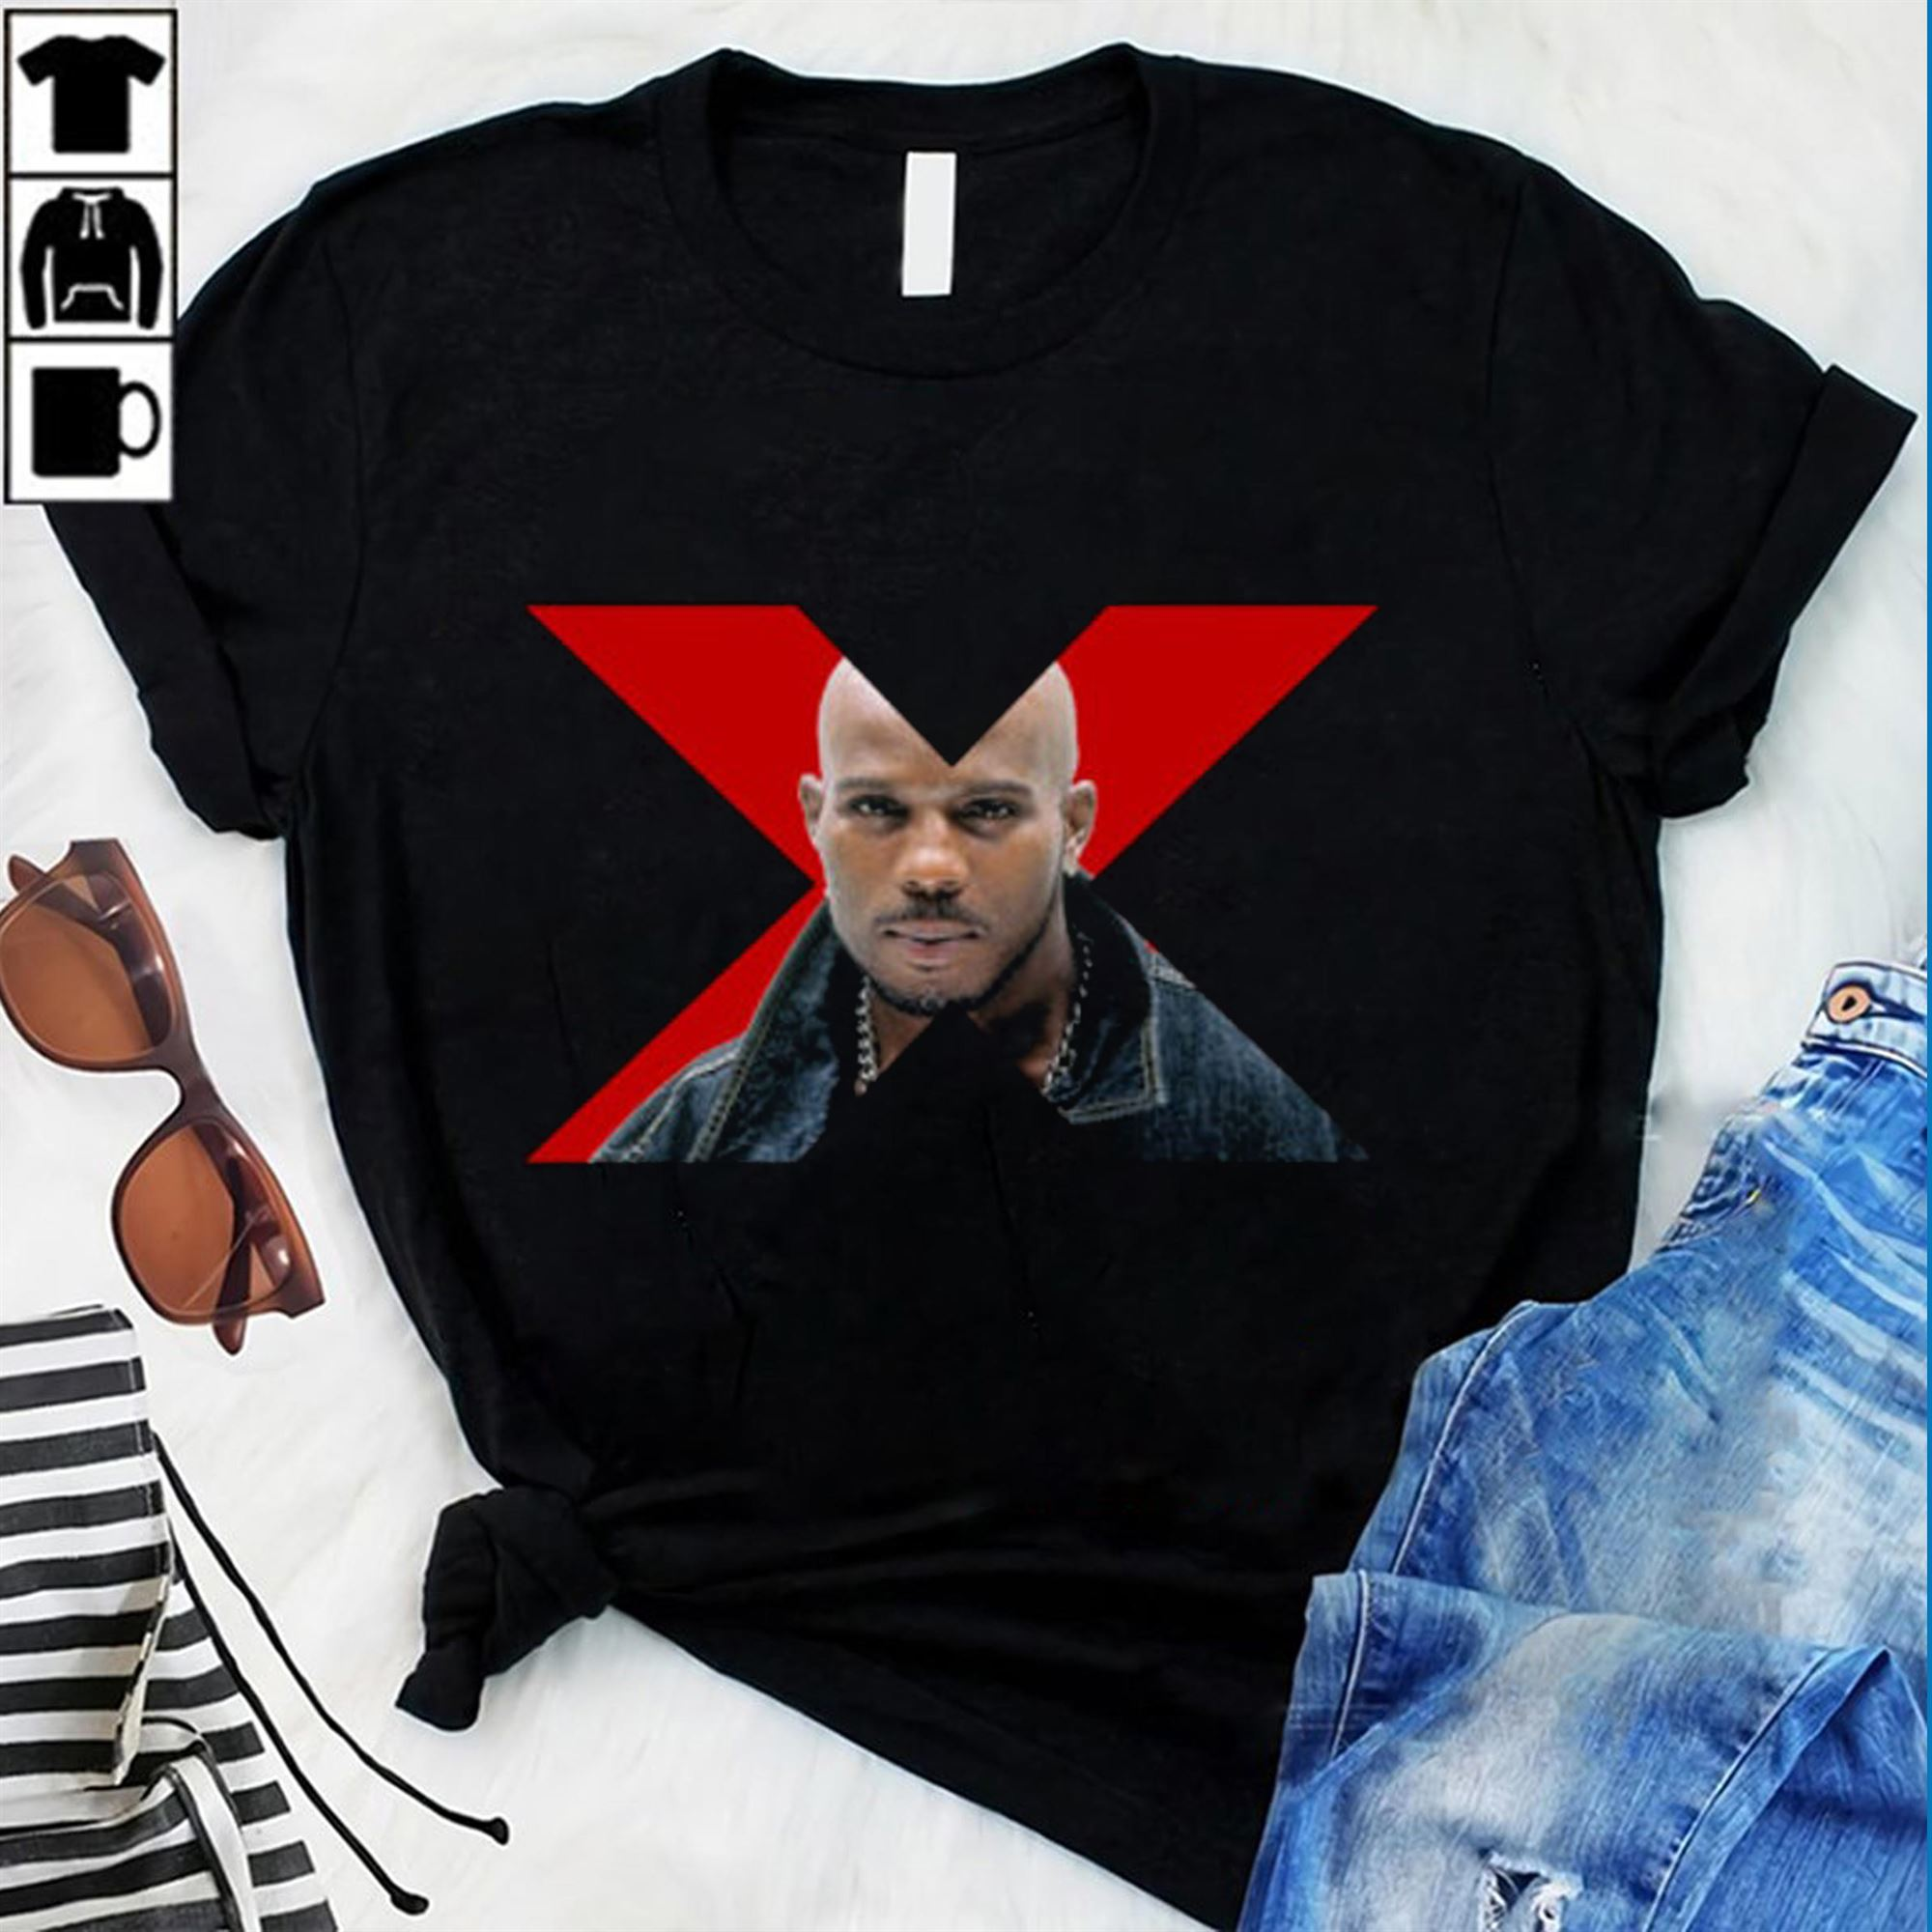 Dmx X T Shirt Hiphop Lengend 90s Rap Cool Dog Party Tee T Shirt